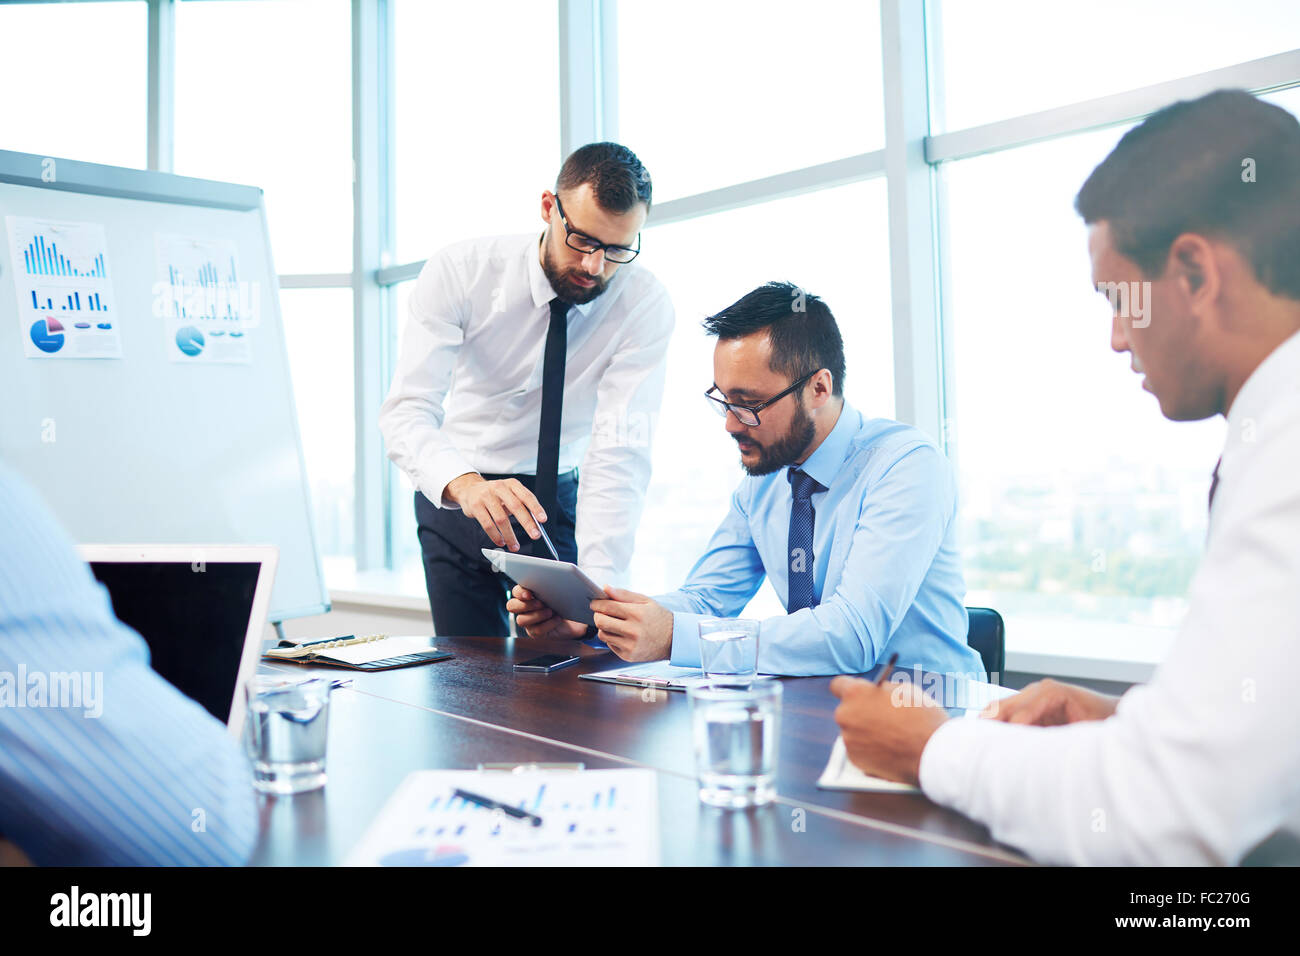 Young businessmen analyzing data in office - Stock Image